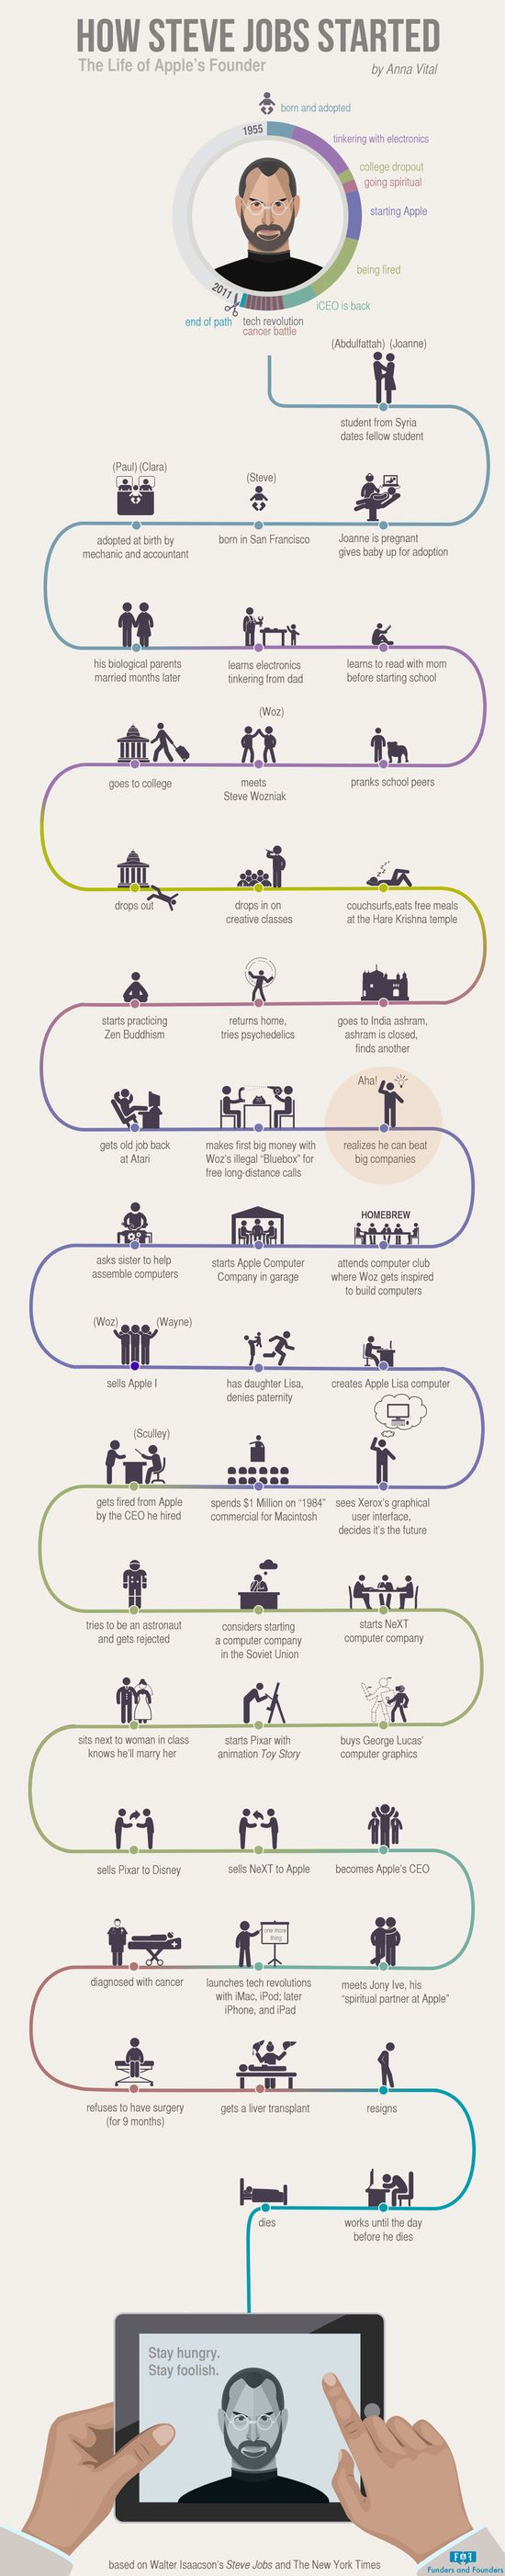 How-steve-jobs-started-infographic